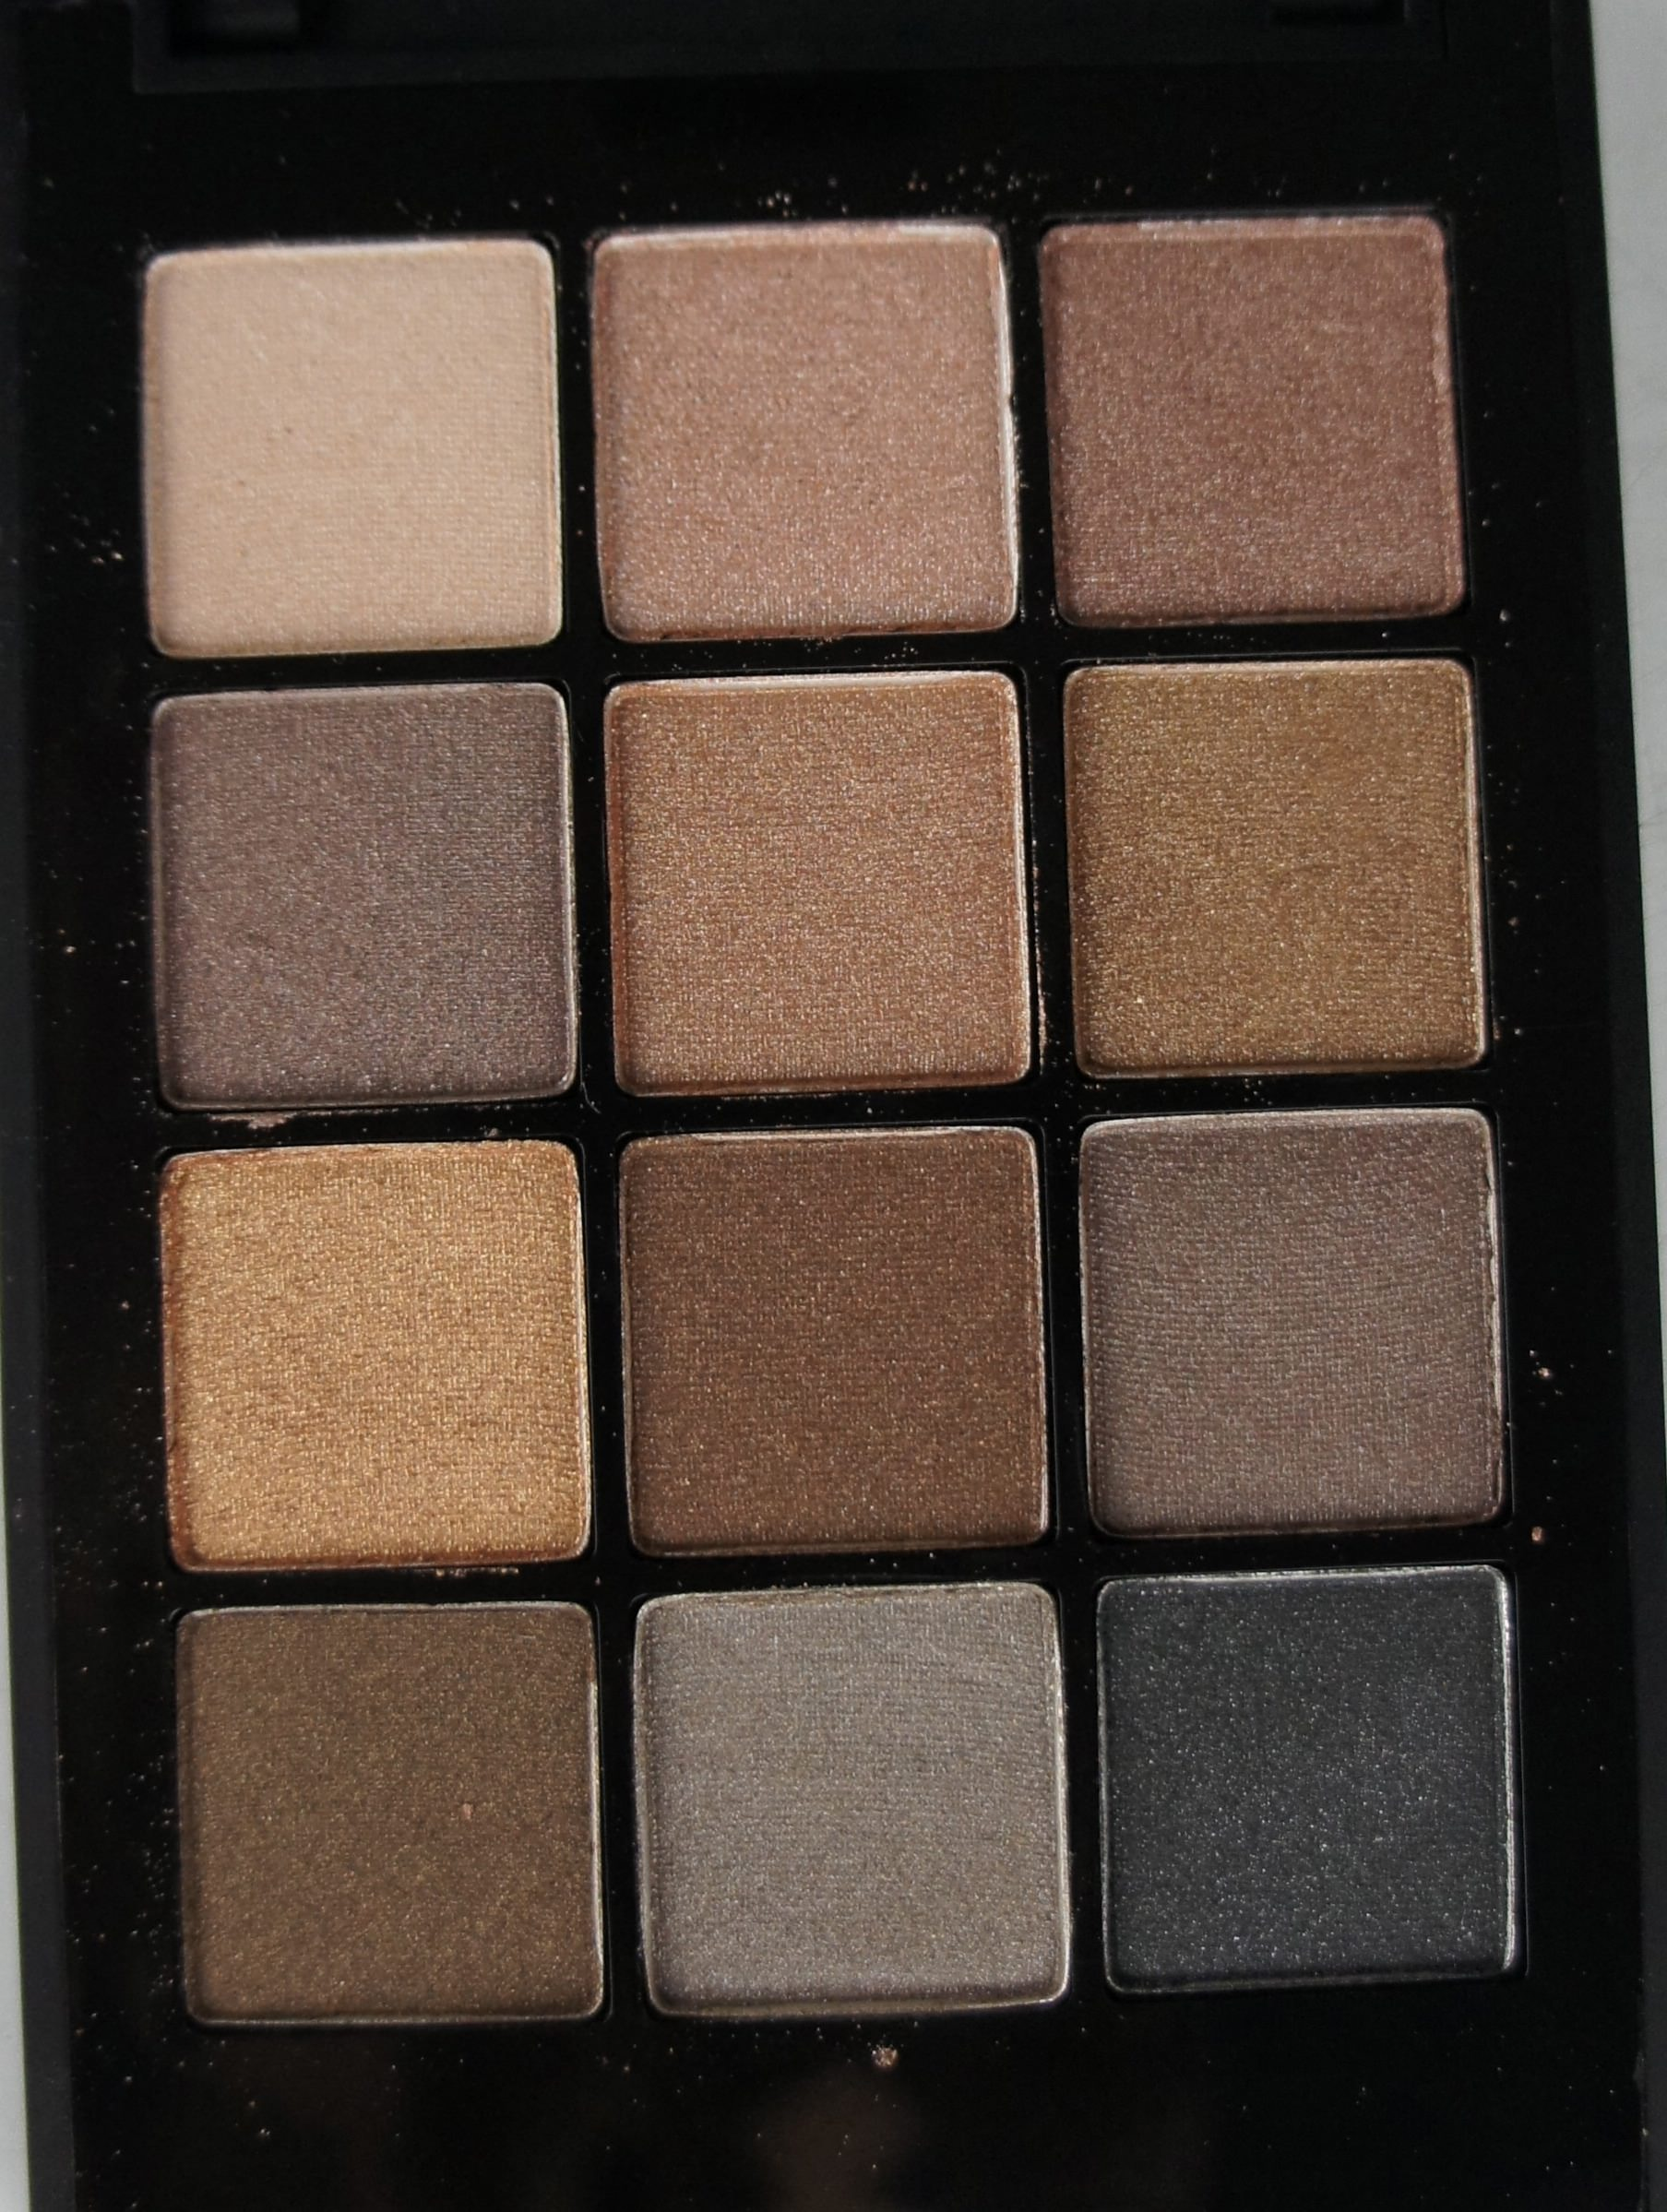 Sonia Kashuk - Eye Couture - Eye on Neutral Shimmer 3